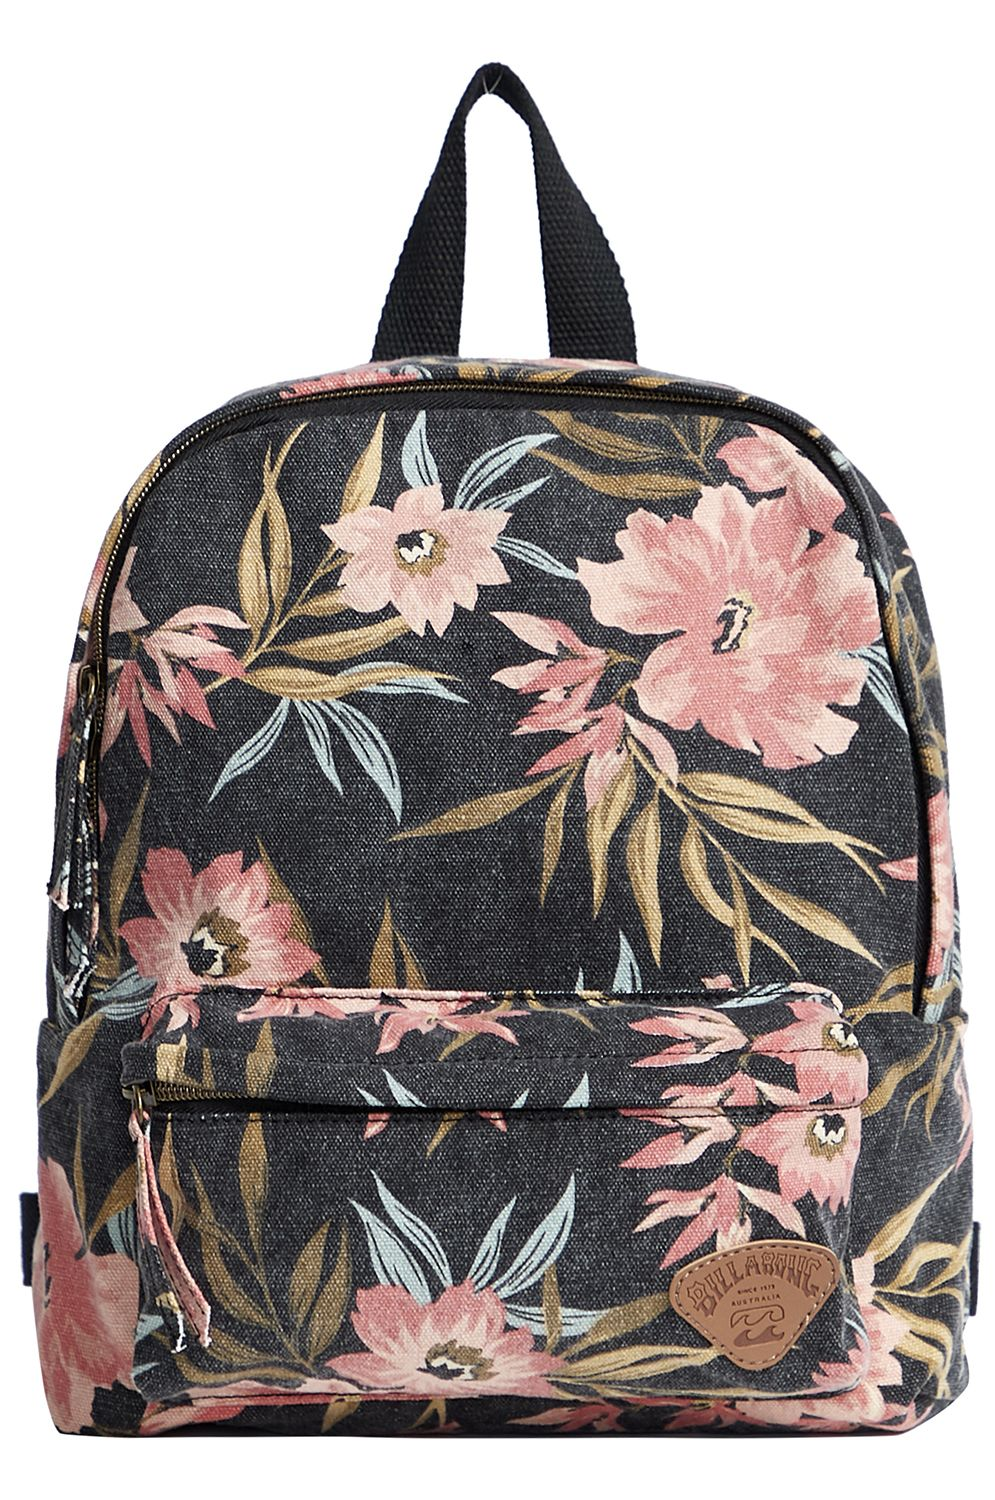 Mochila Billabong MINI MAMA LOST PARADISE Black/Pink